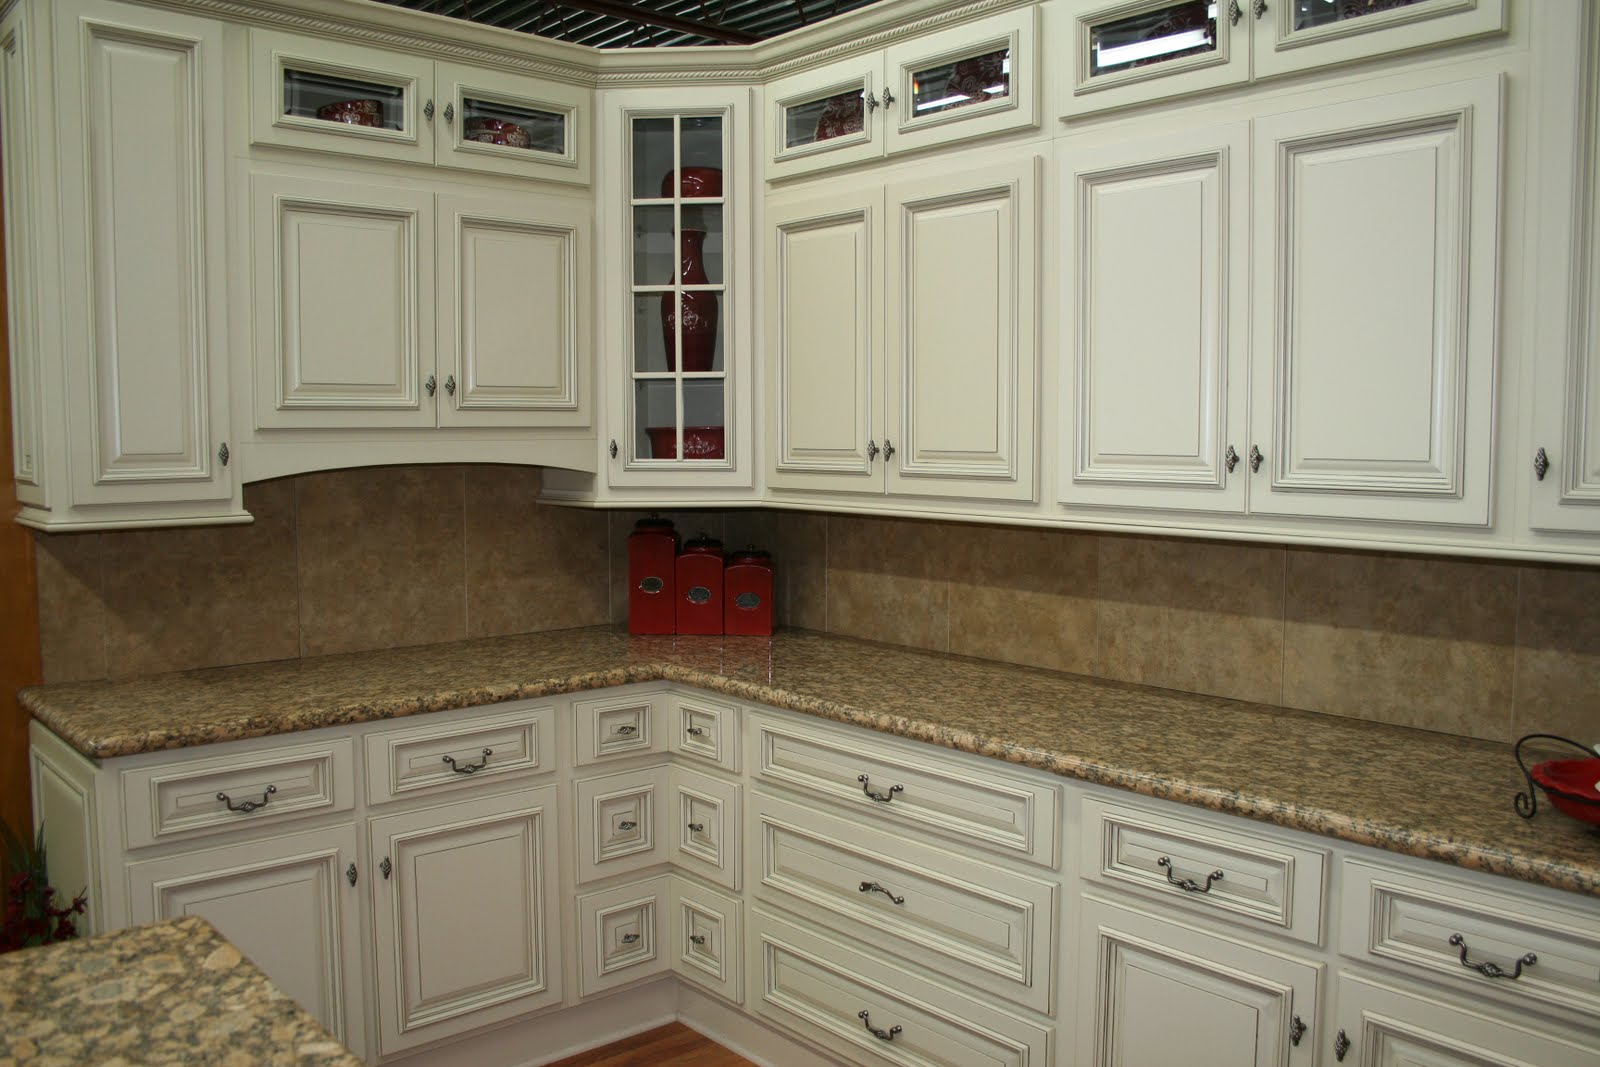 kitchen cabinet refacing ideas white easy endeavor to with - Kitchen Cabinet Refacing Ideas